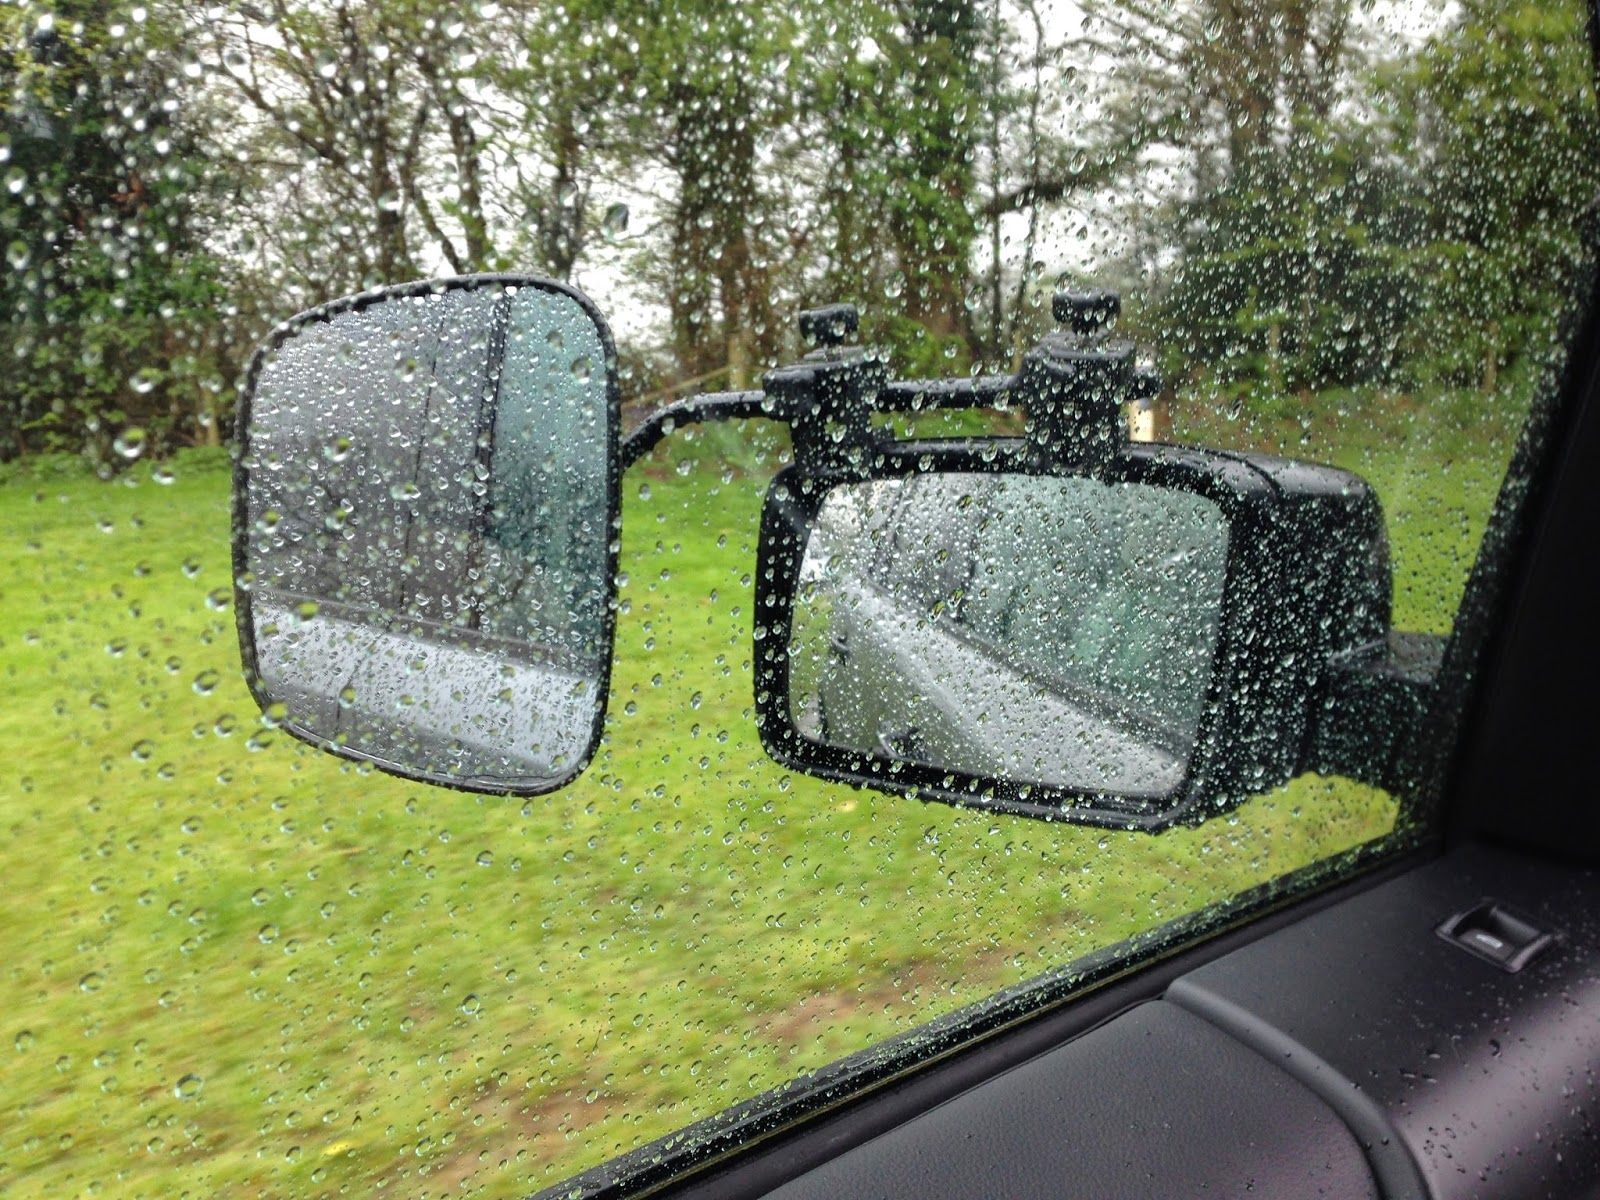 Rain on a car window and wing mirror